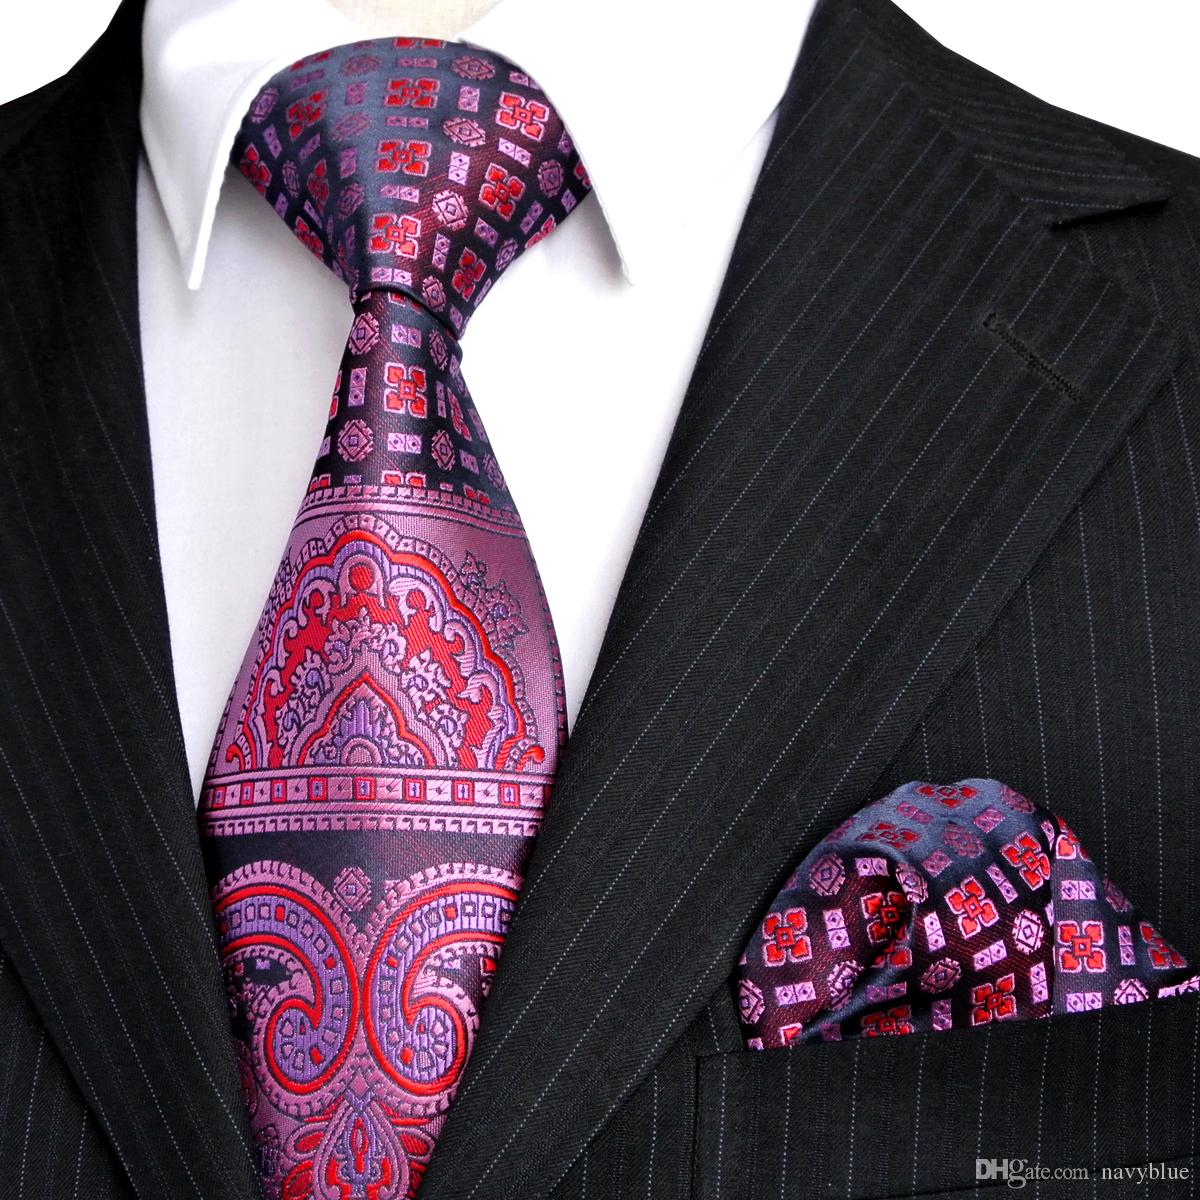 Loved by GQ, we have the biggest selection of premium men's ties, at just $19 for most. Free Shipping available. The Tie Bar is the one-stop destination for luxury menswear at unbeatable prices.